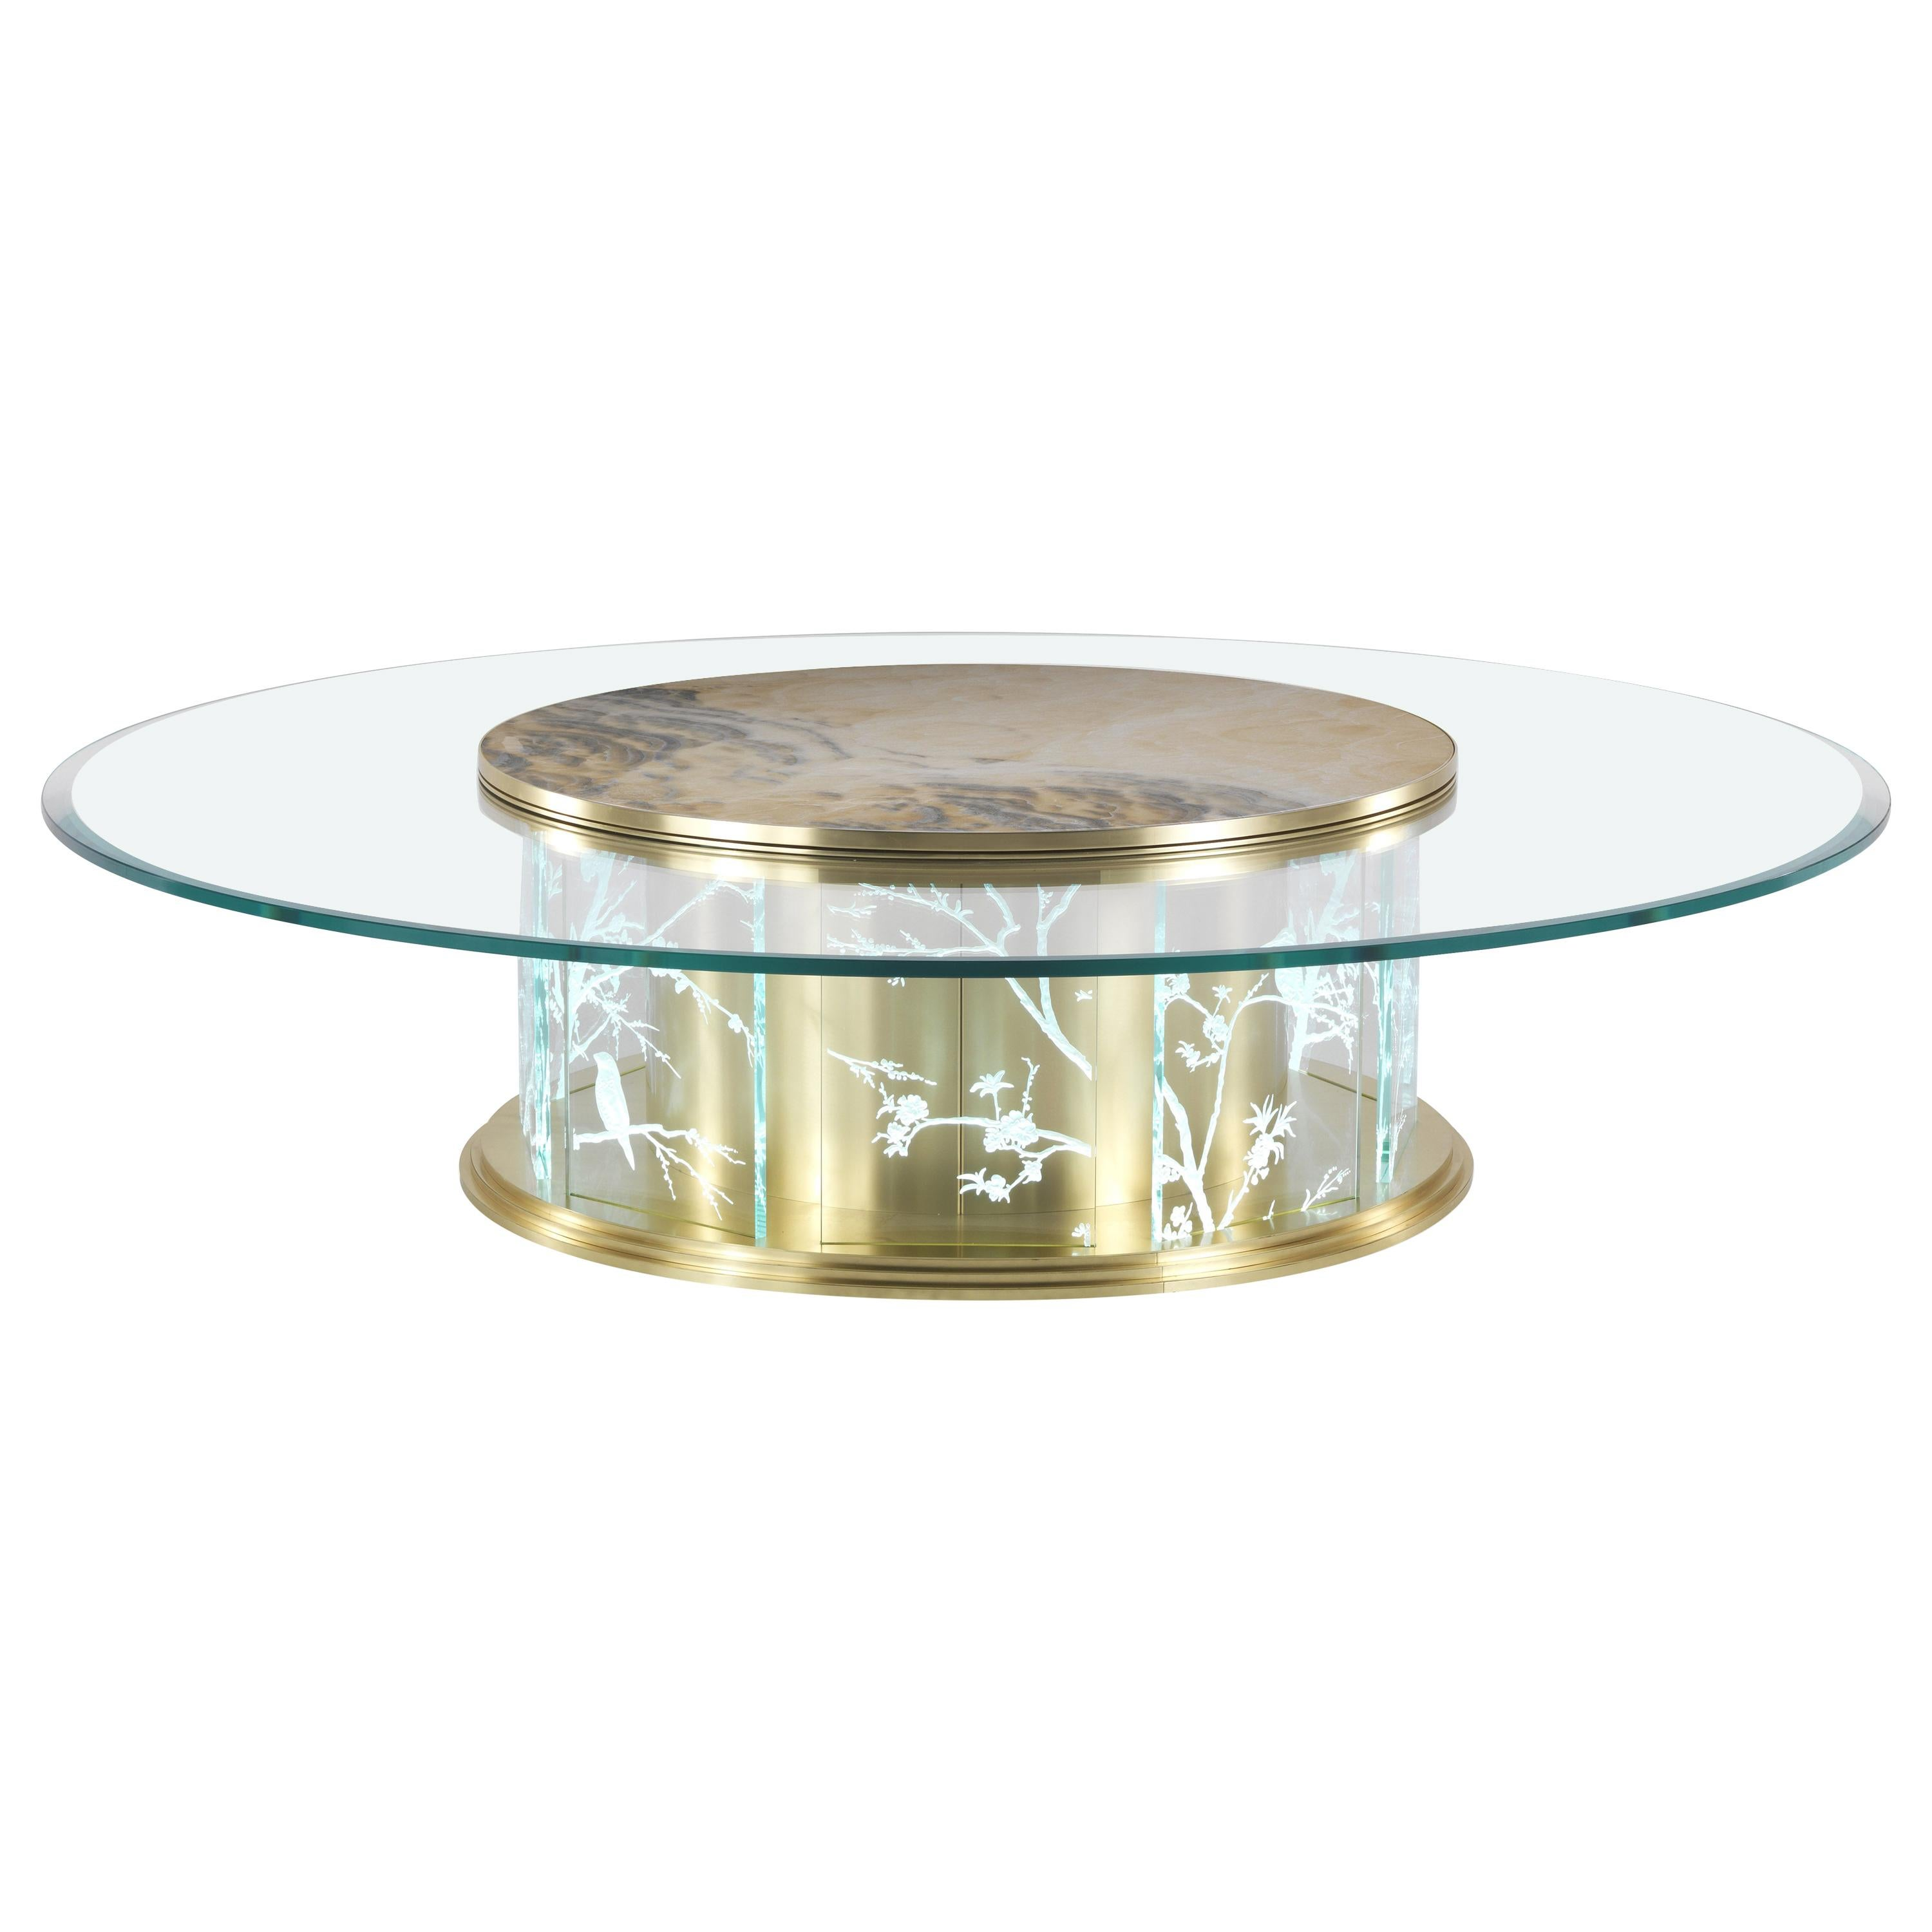 Jumbo Collection Fuji Center Table in Brass and Glass Top